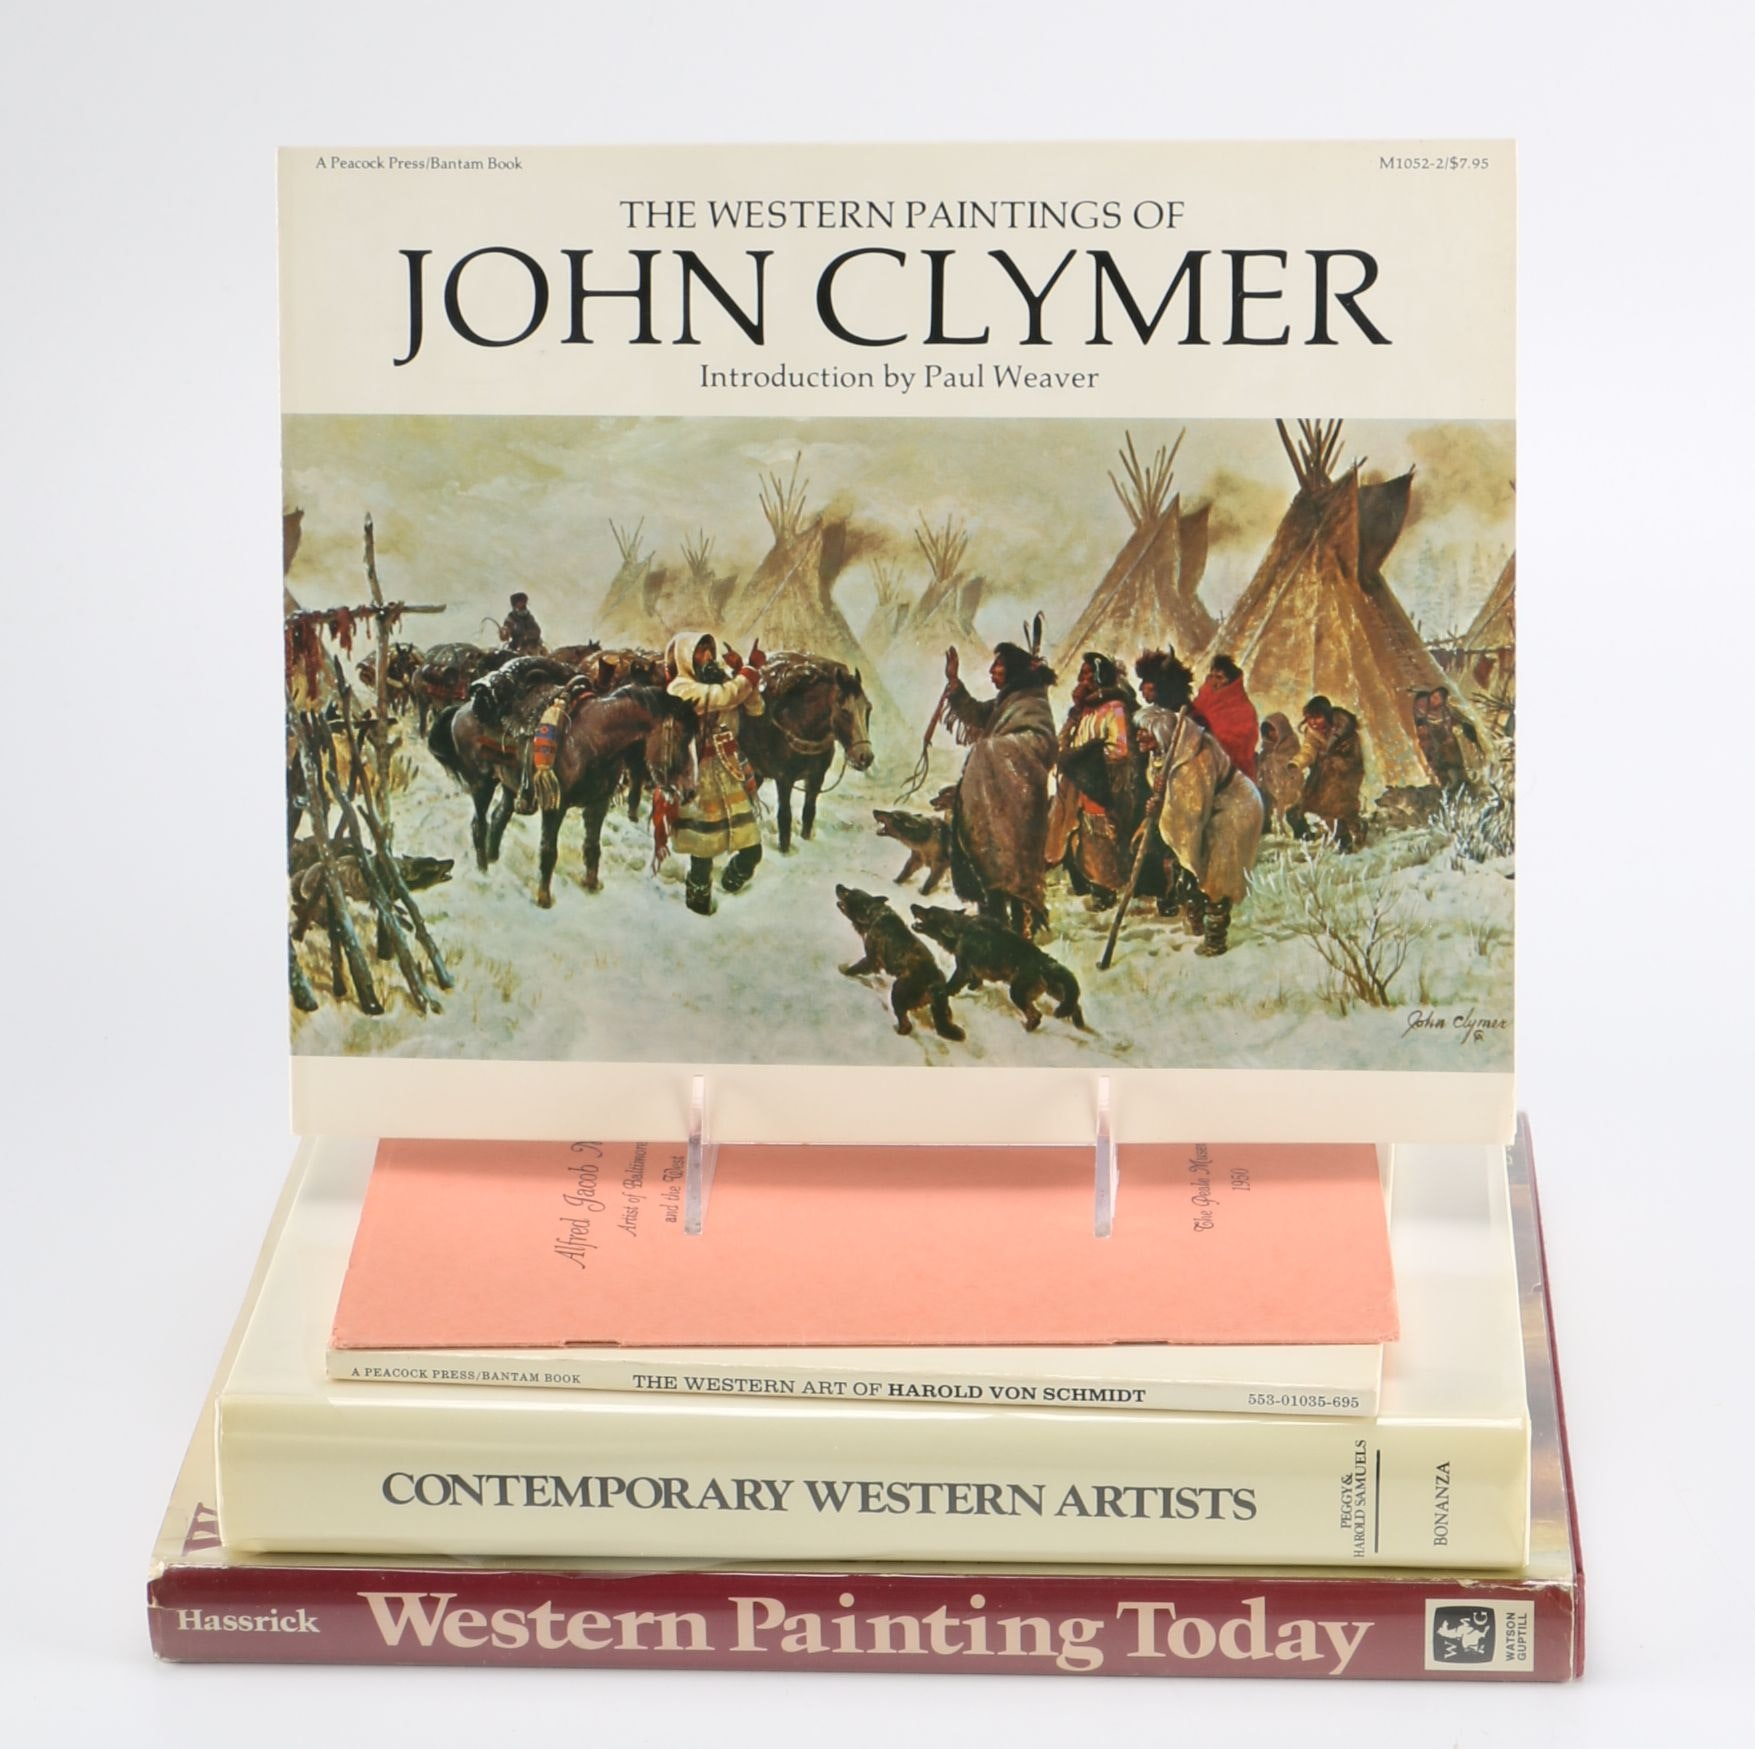 Collection of Books Featuring Contemporary Western Artwork